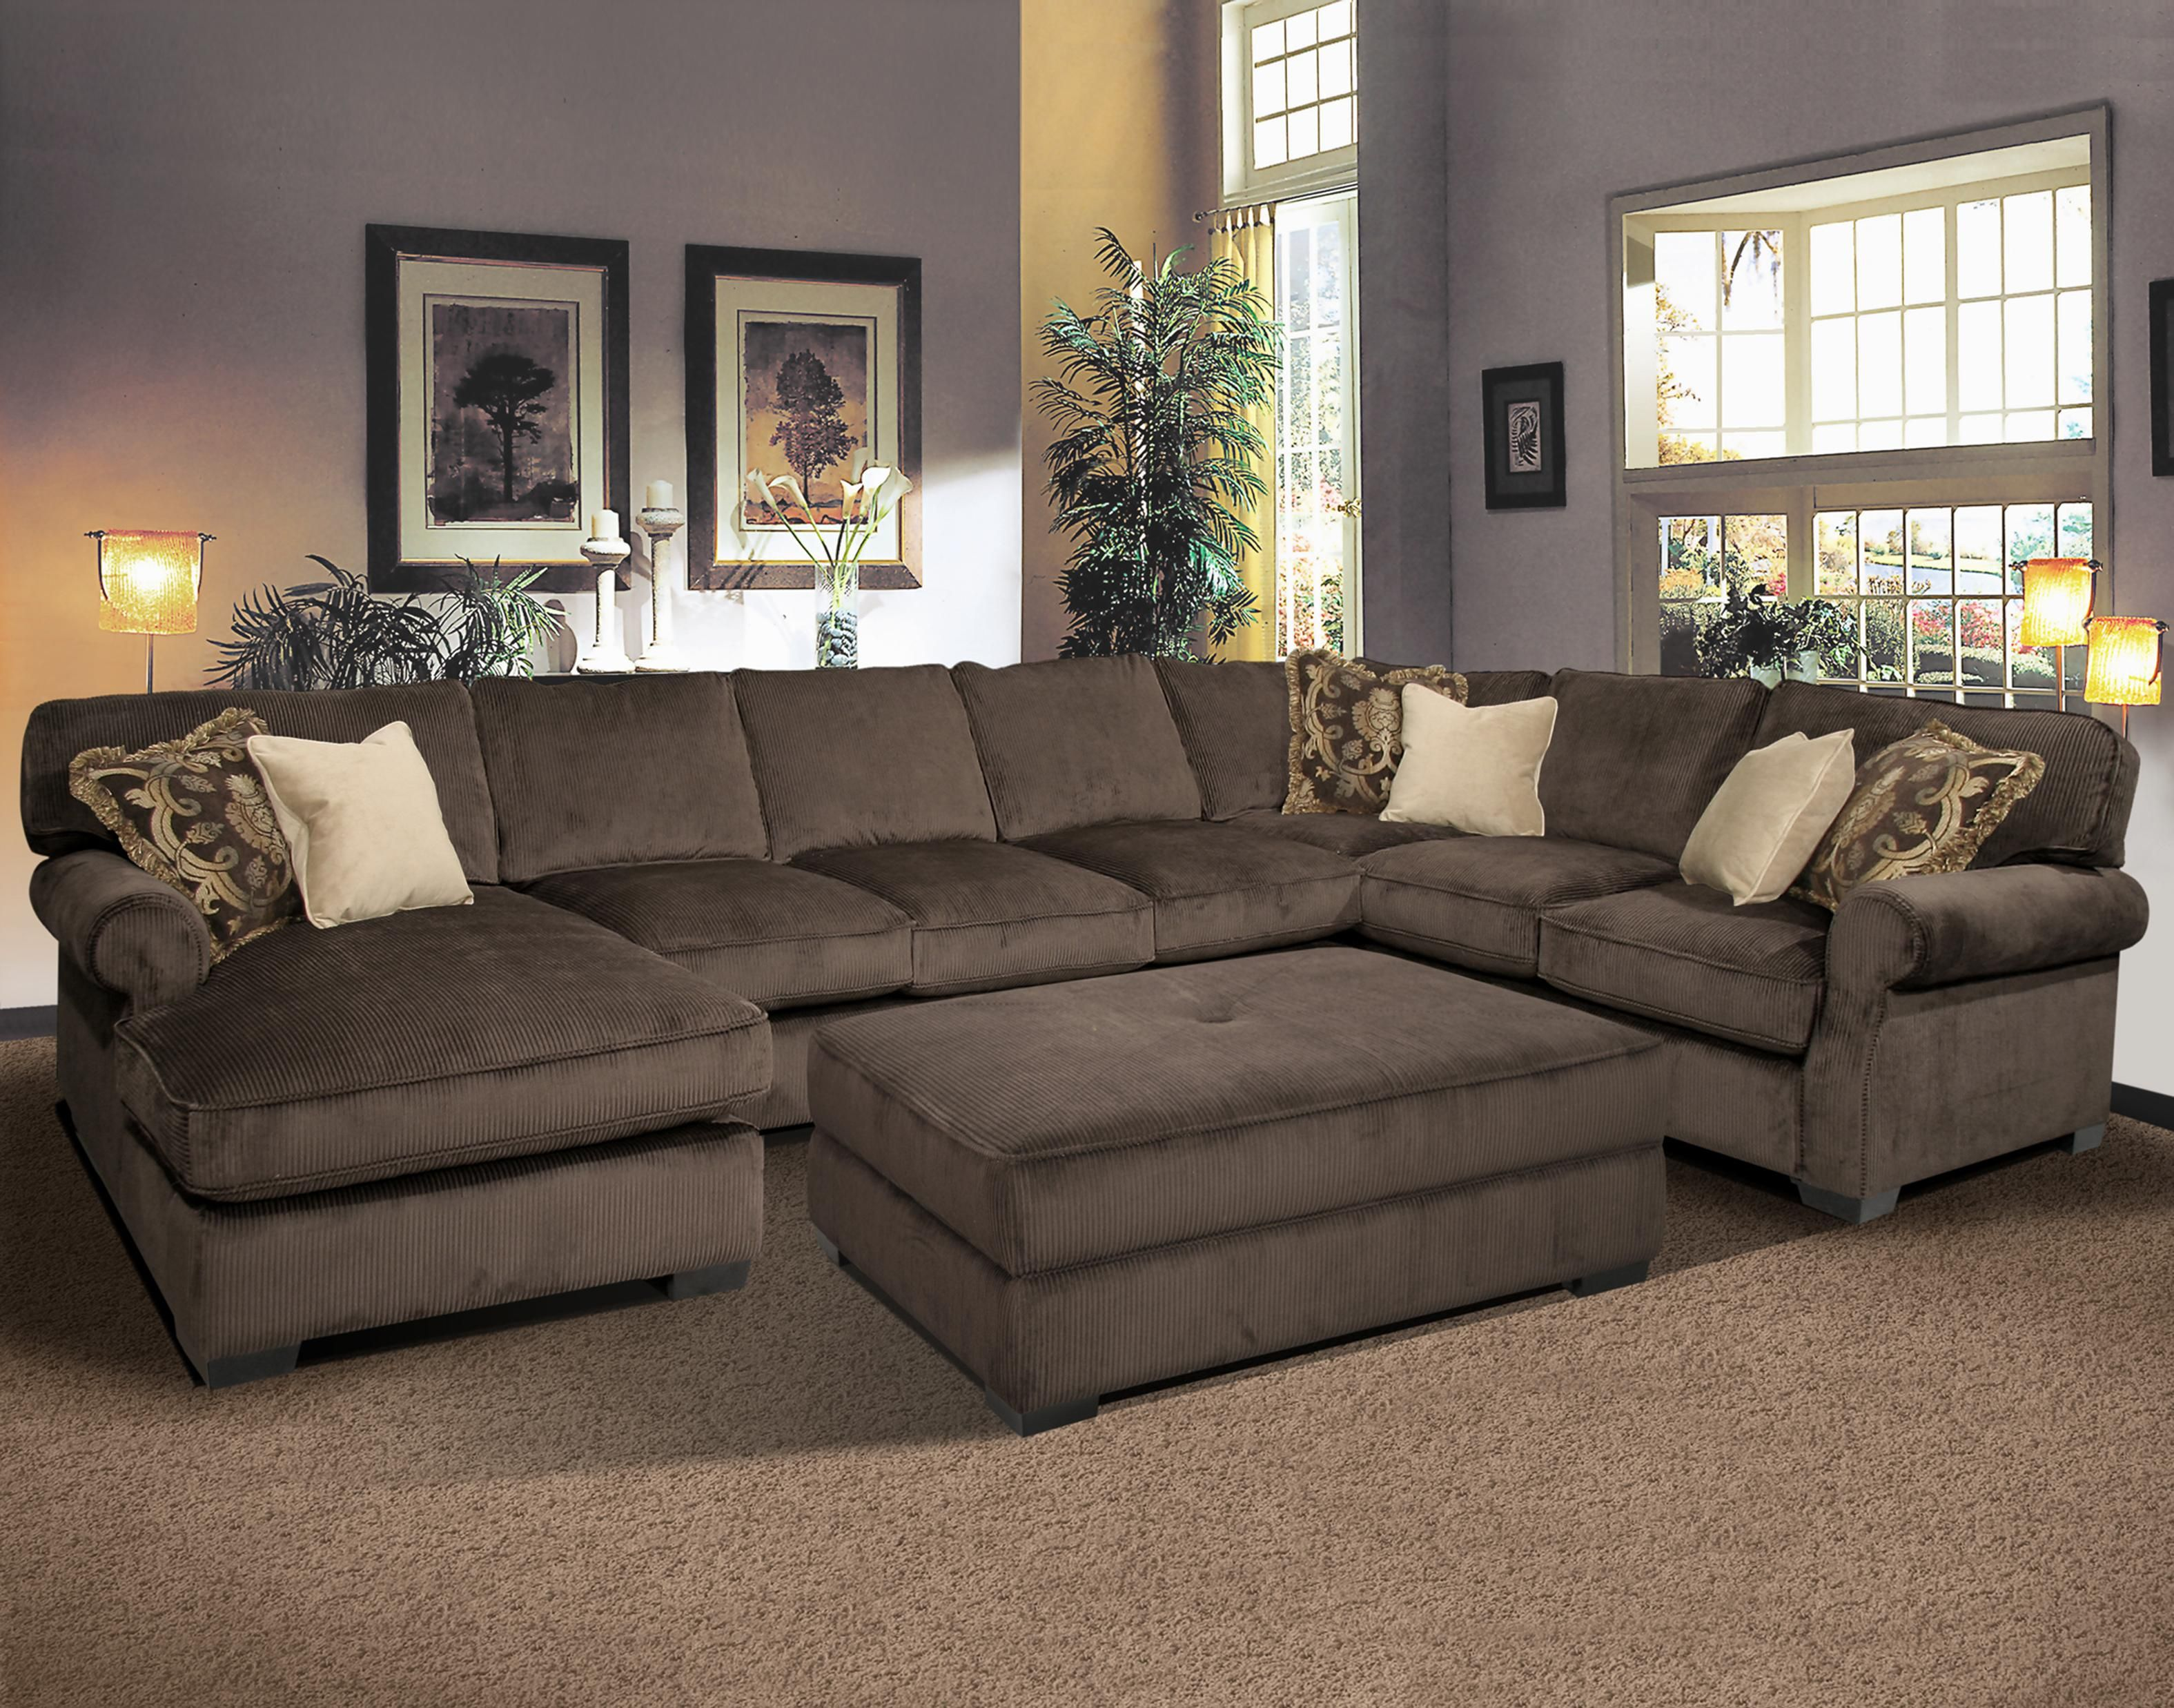 best 20+ sectional couches ideas on pinterest